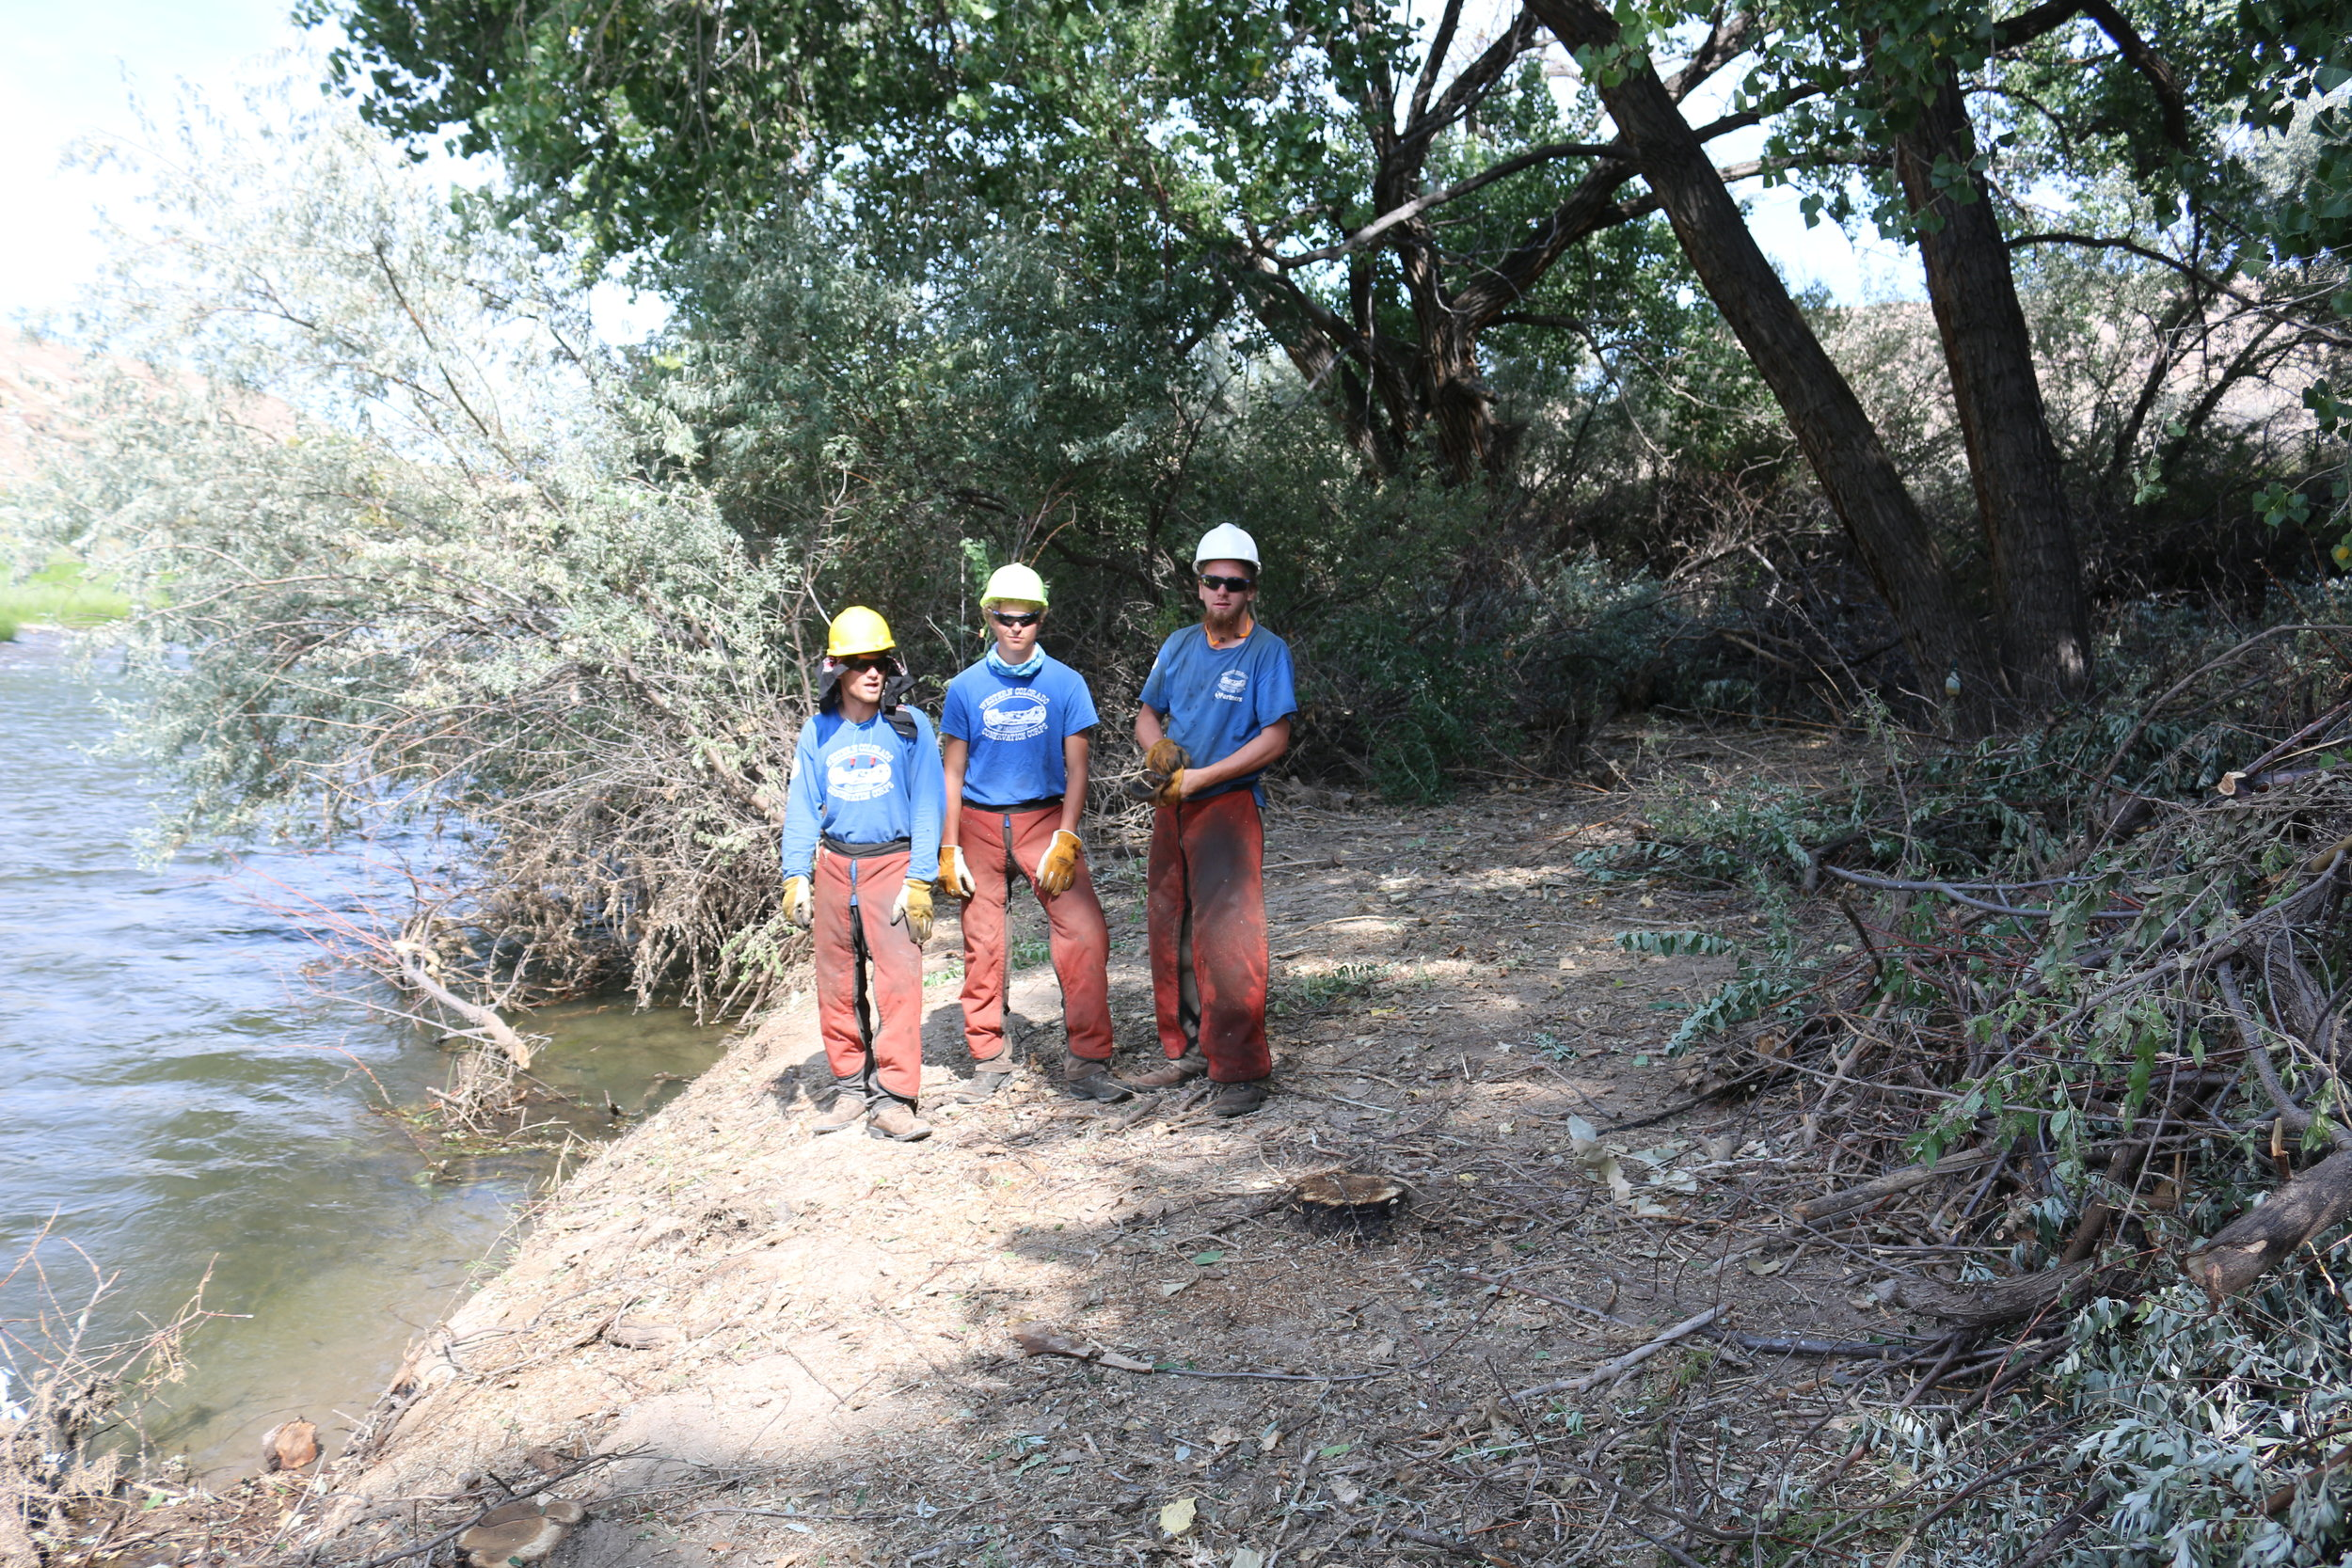 Youth Conservation Corps members cut the invasive species, Russian Olive, along the banks of the Gunnison River. Native trees and shrubs were planted to improve riparian habitat.